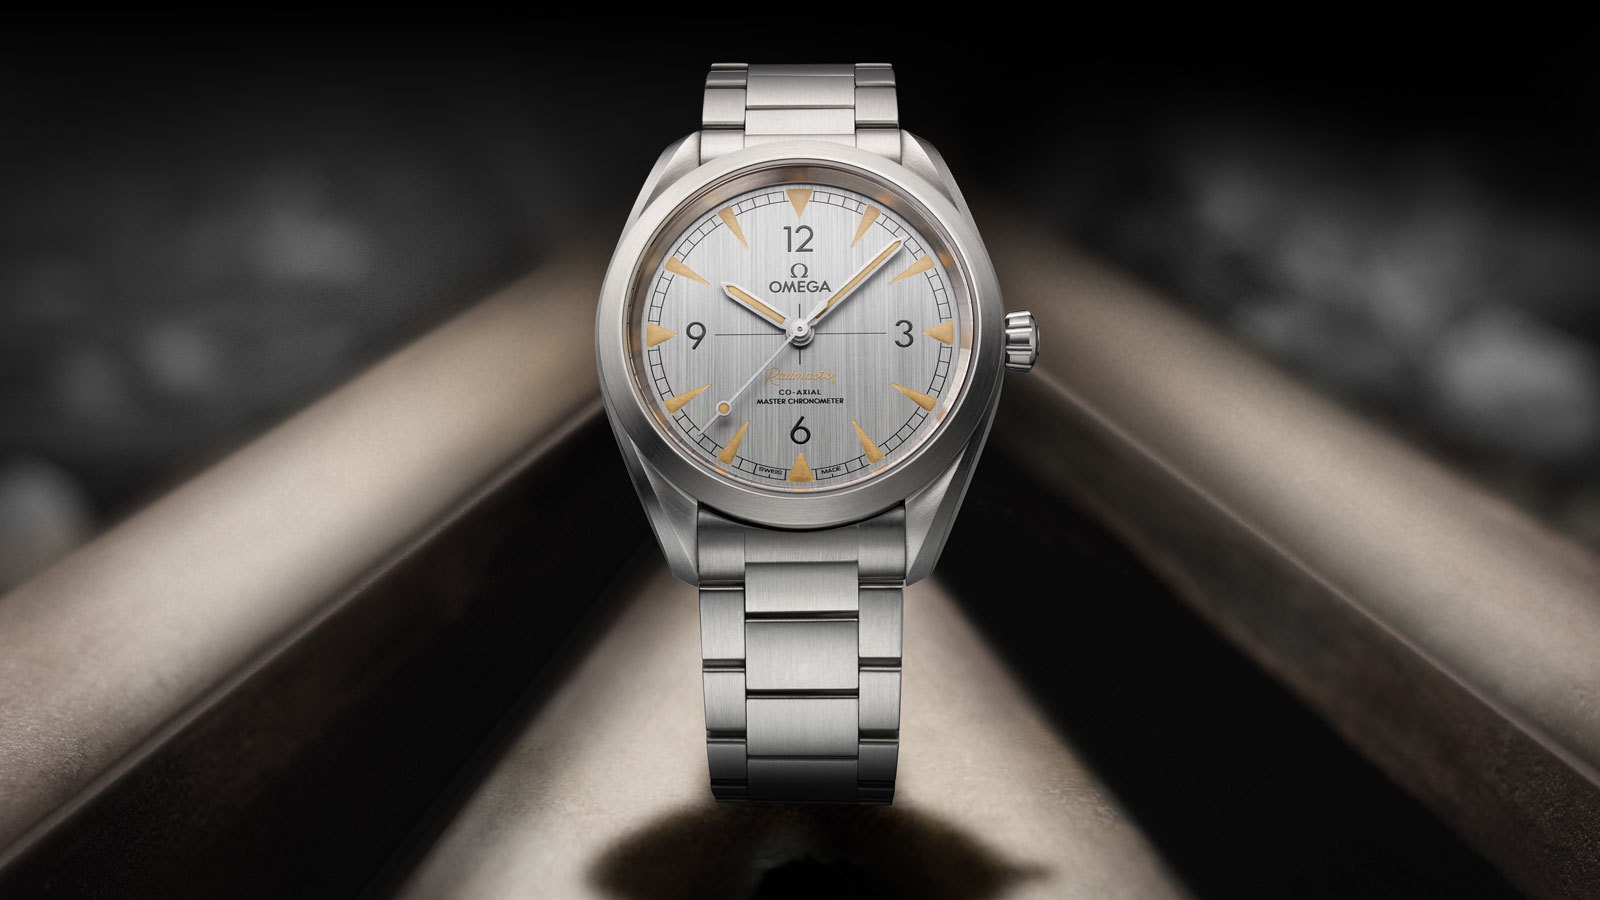 Seamaster レイルマスター Railmaster Omega Co‑Axial Master Chronometer 40 mm ウォッチ - 220.10.40.20.06.001